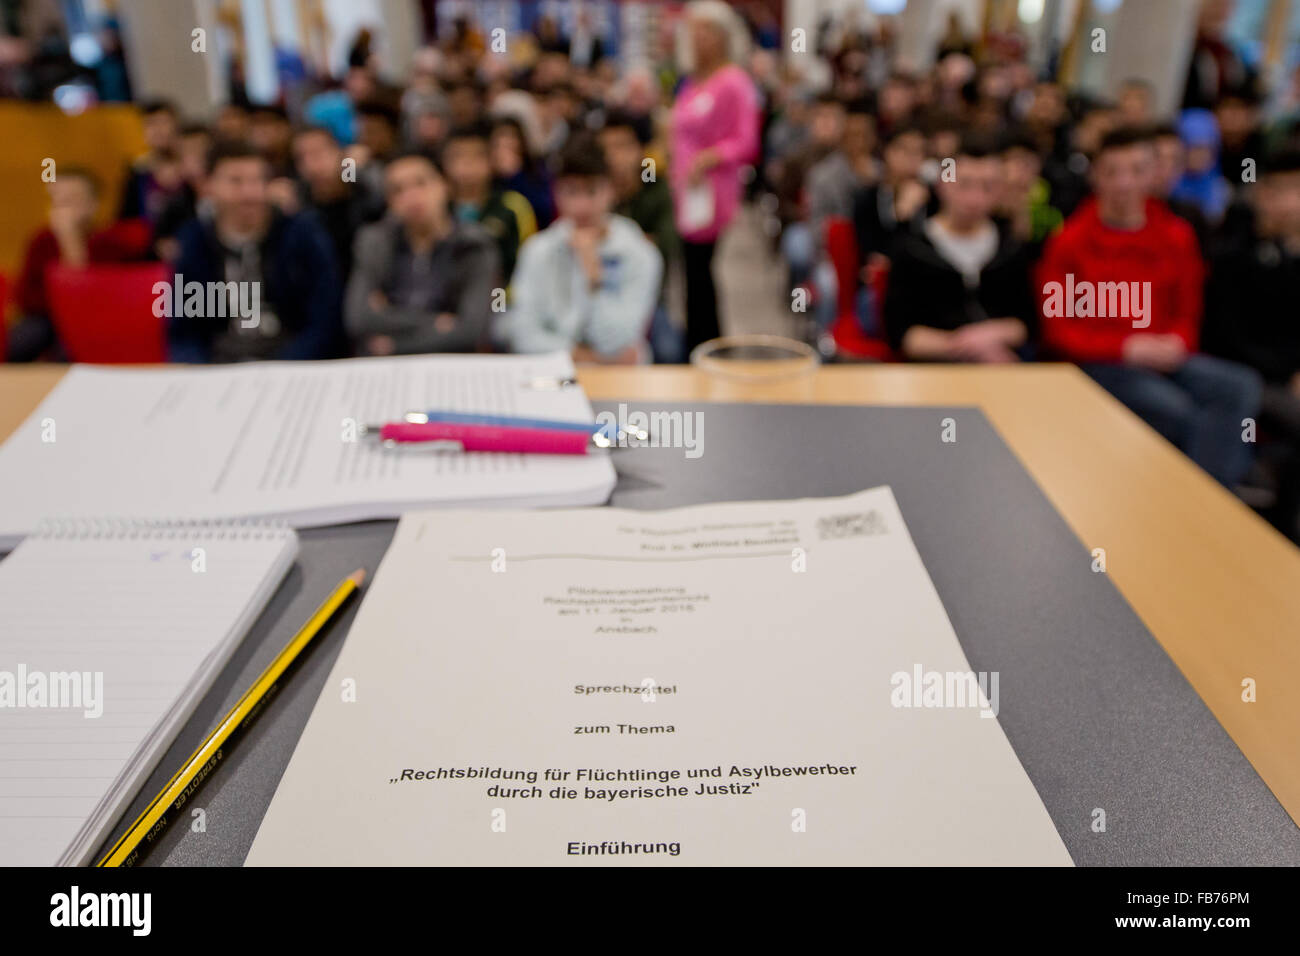 A document reads 'Legal education for refugees and asylum applicants through the Bavarian judiciary' during - Stock Image